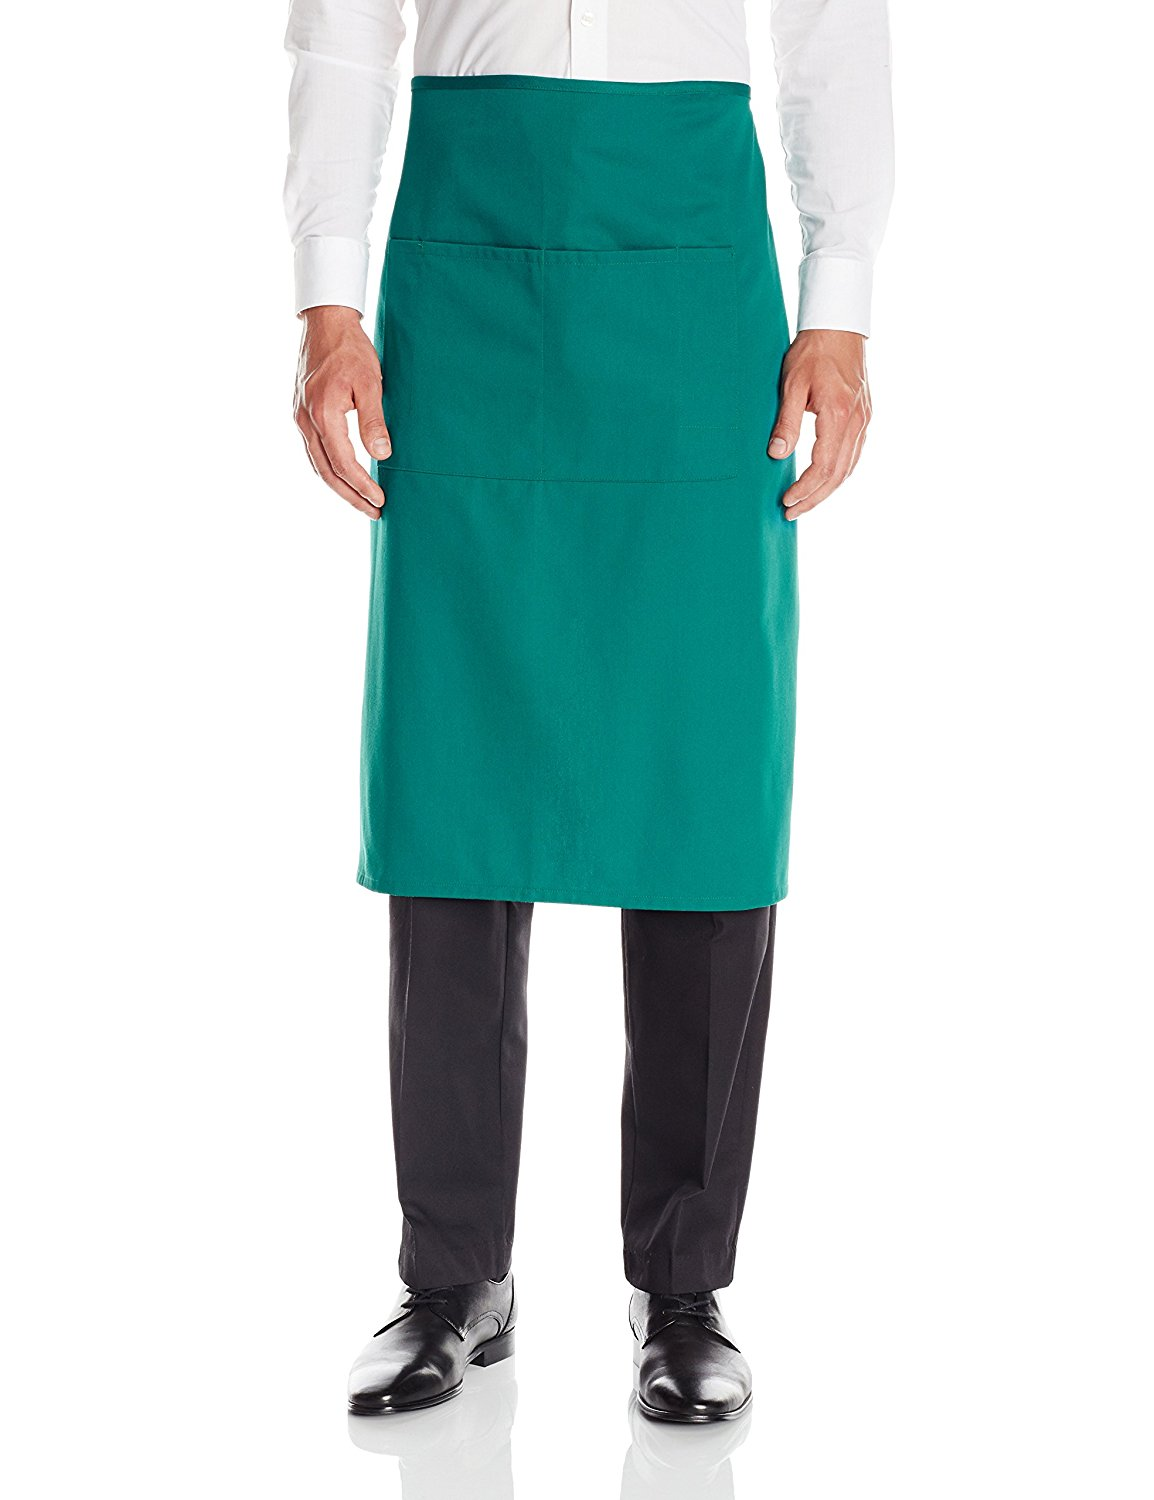 Chef Men's Unisex Waist Apron,Full Bistro,Royal, One Size By Dickies